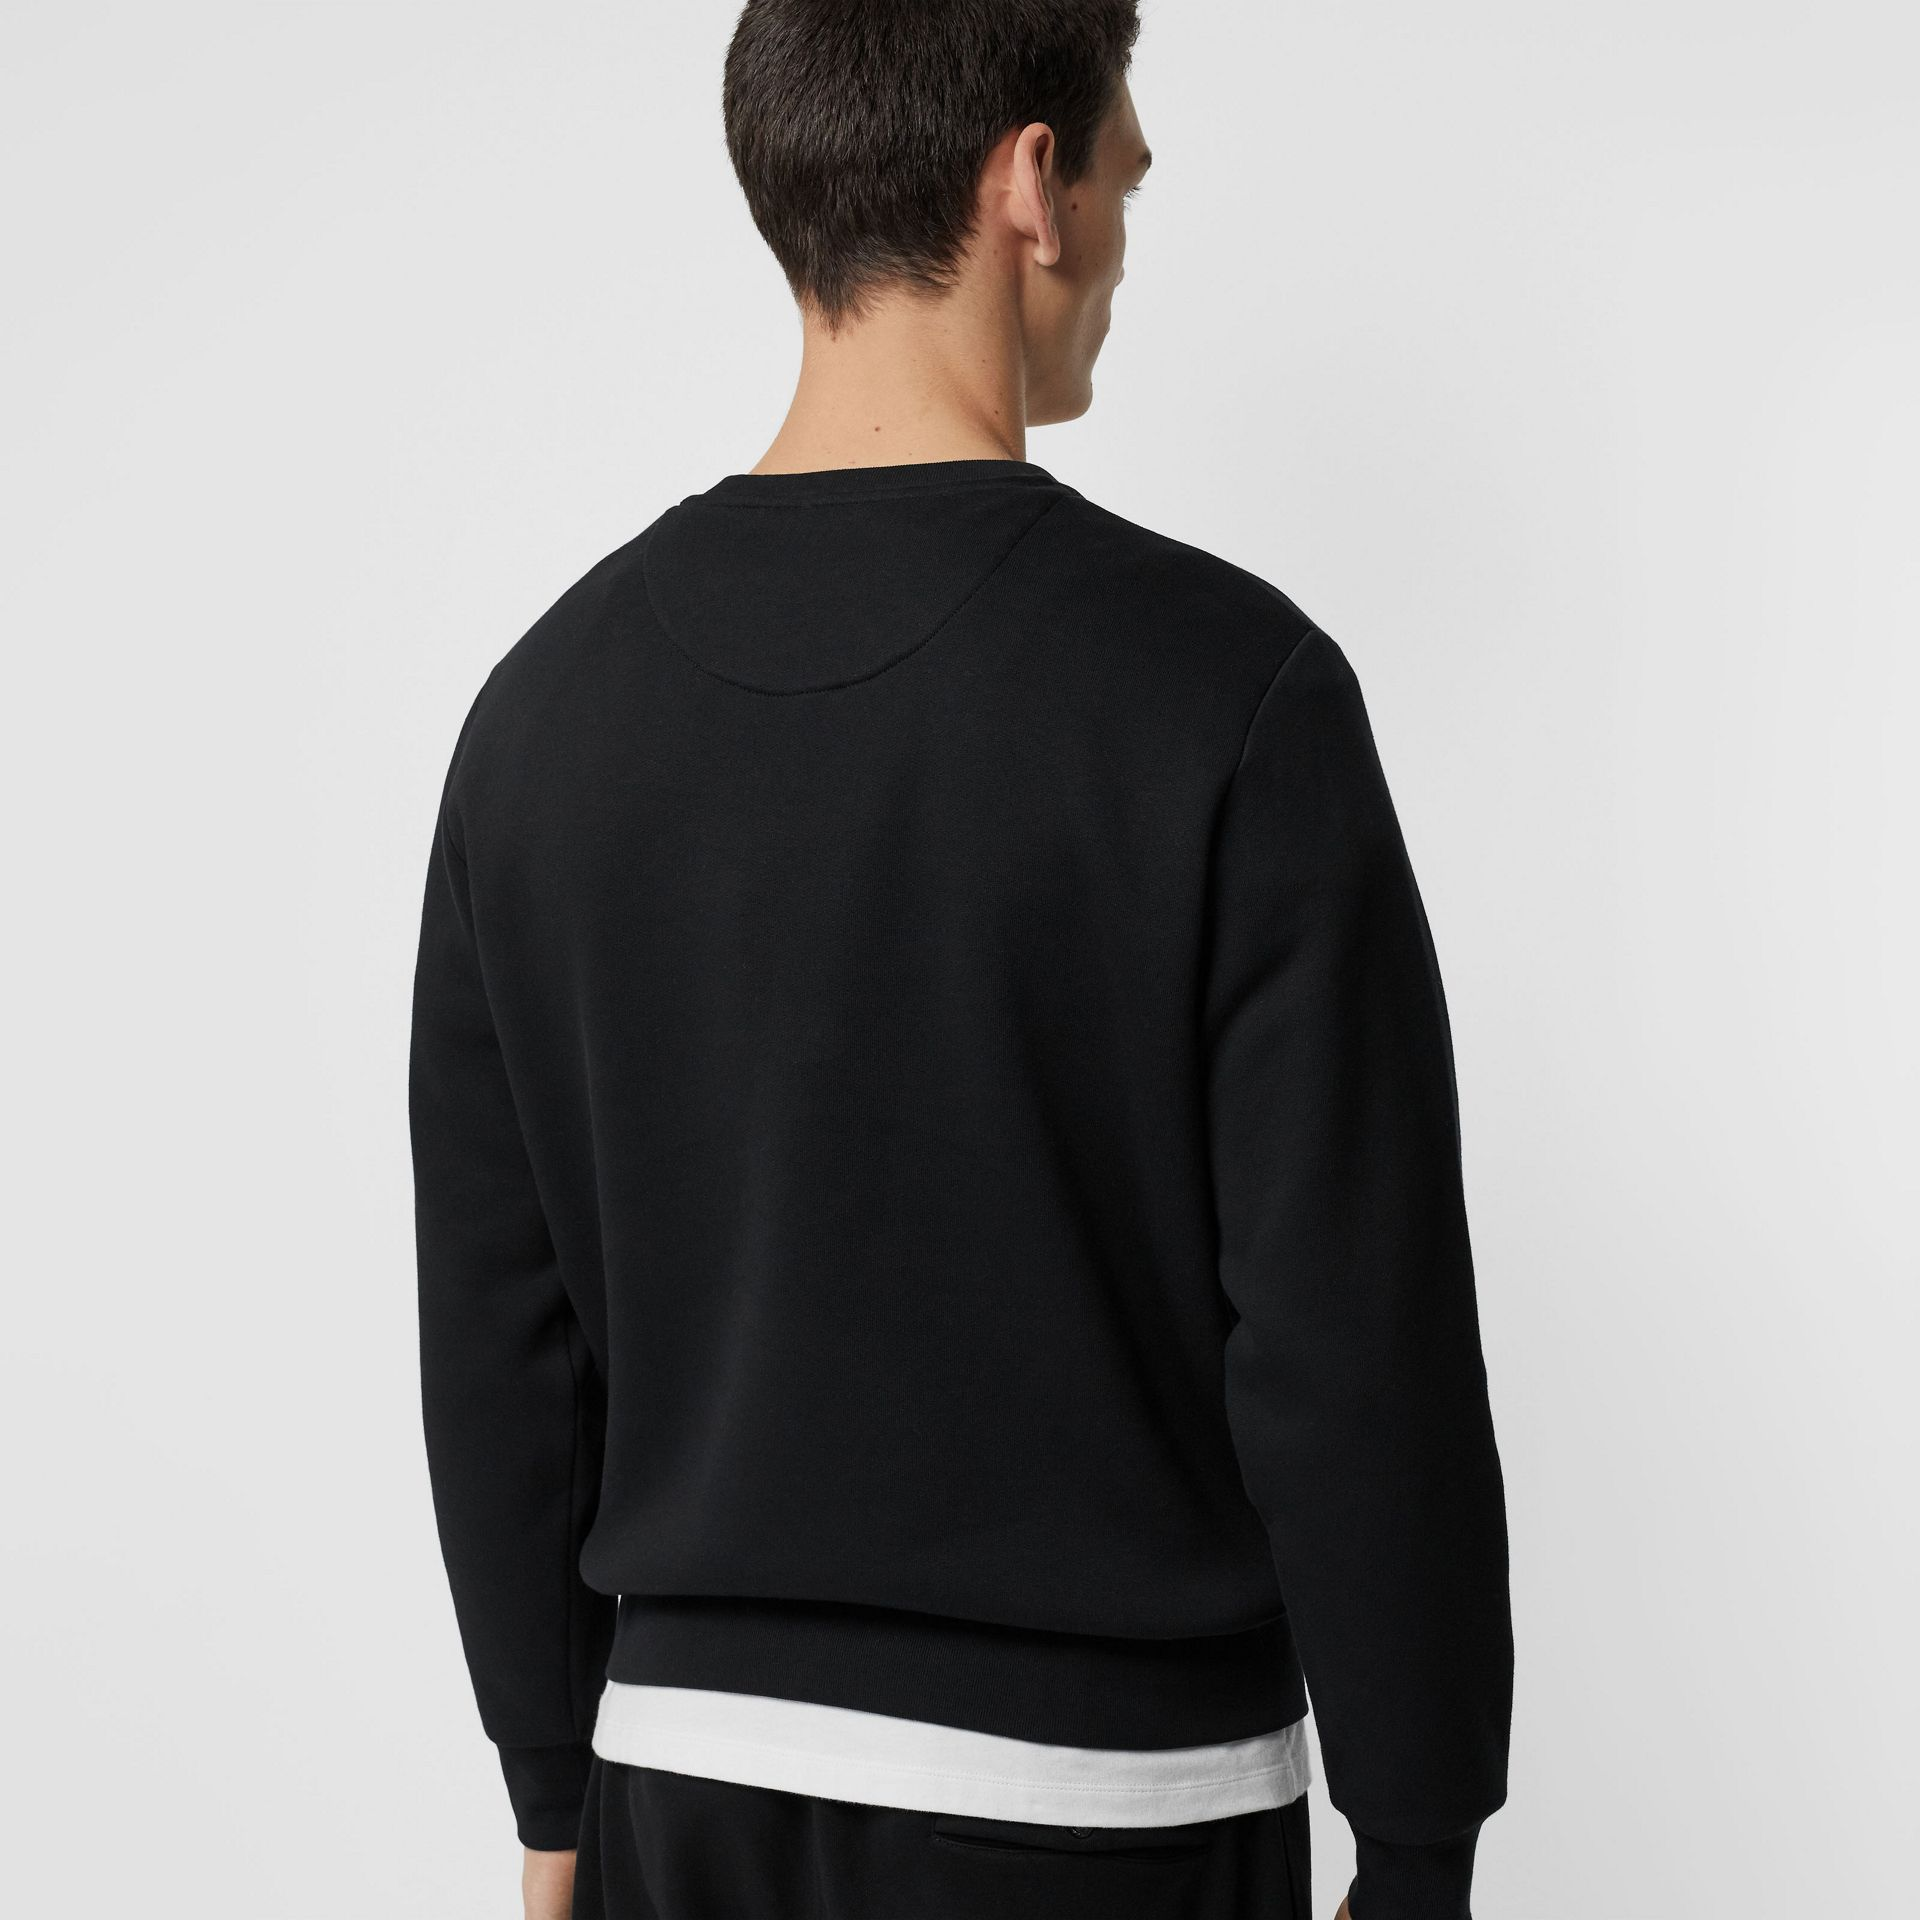 Bullion Floral Cotton Blend Sweatshirt in Black - Men | Burberry - gallery image 2